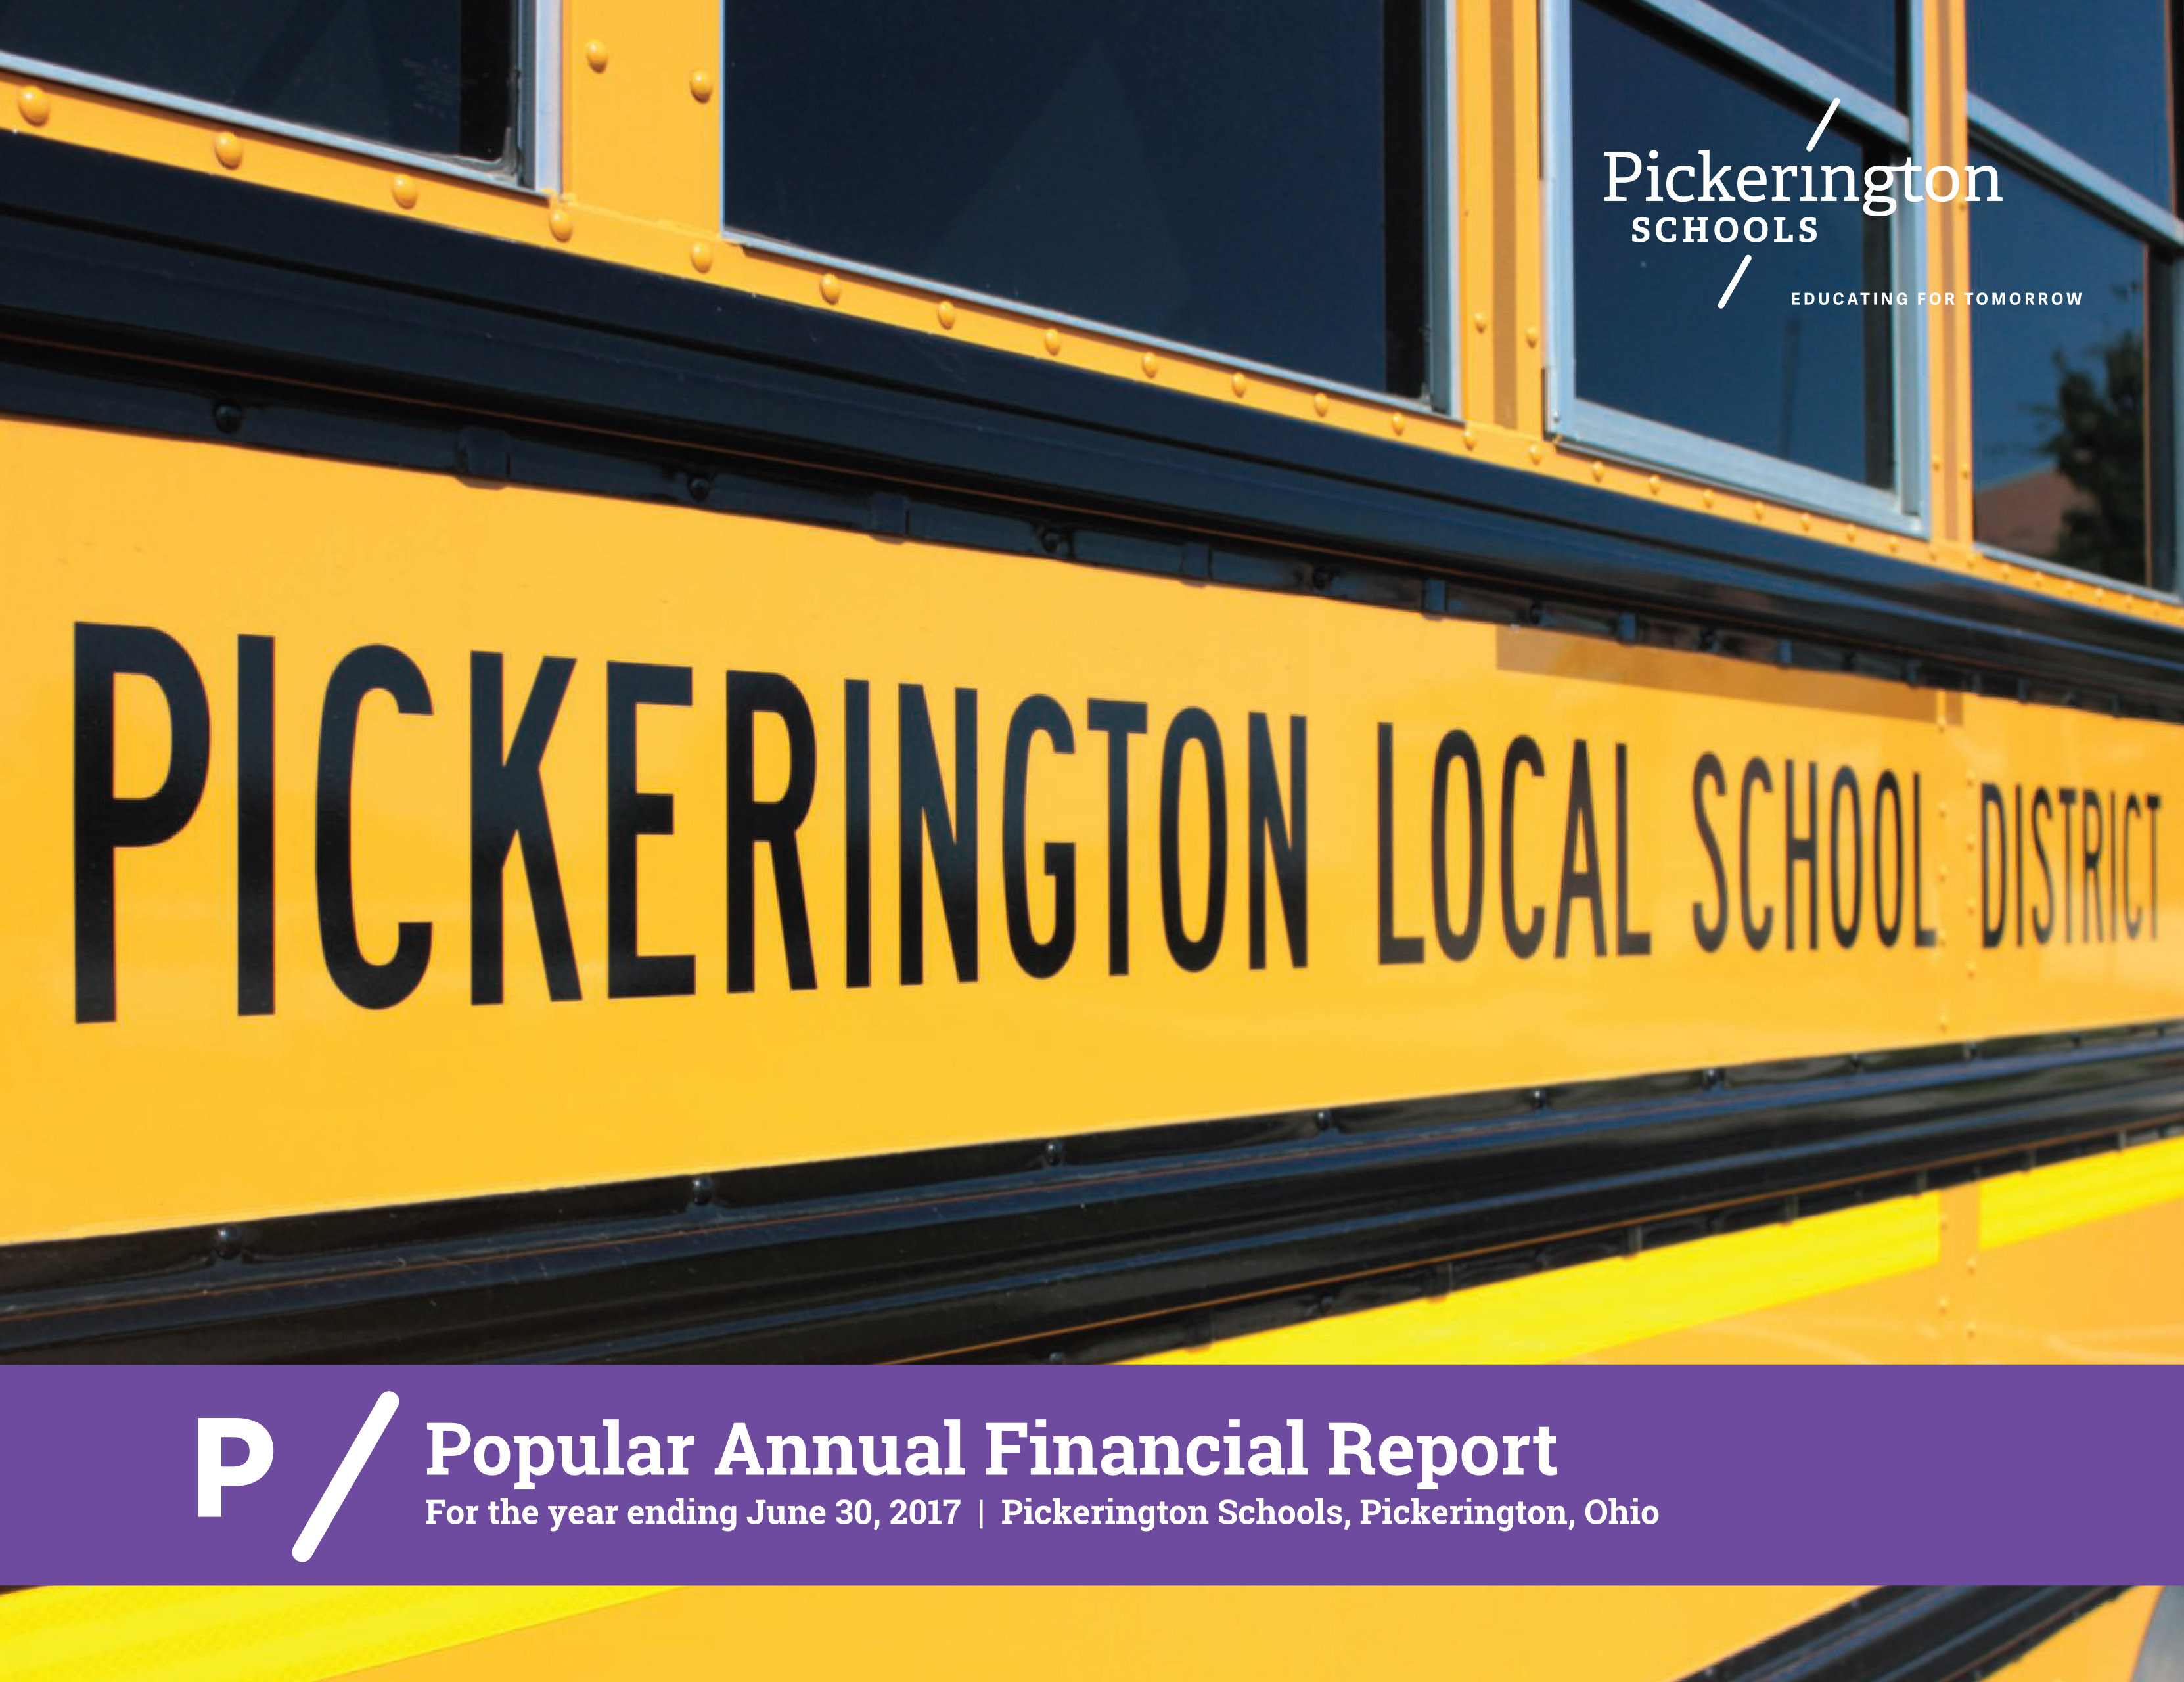 Cover of the Popular Annual Financial Report